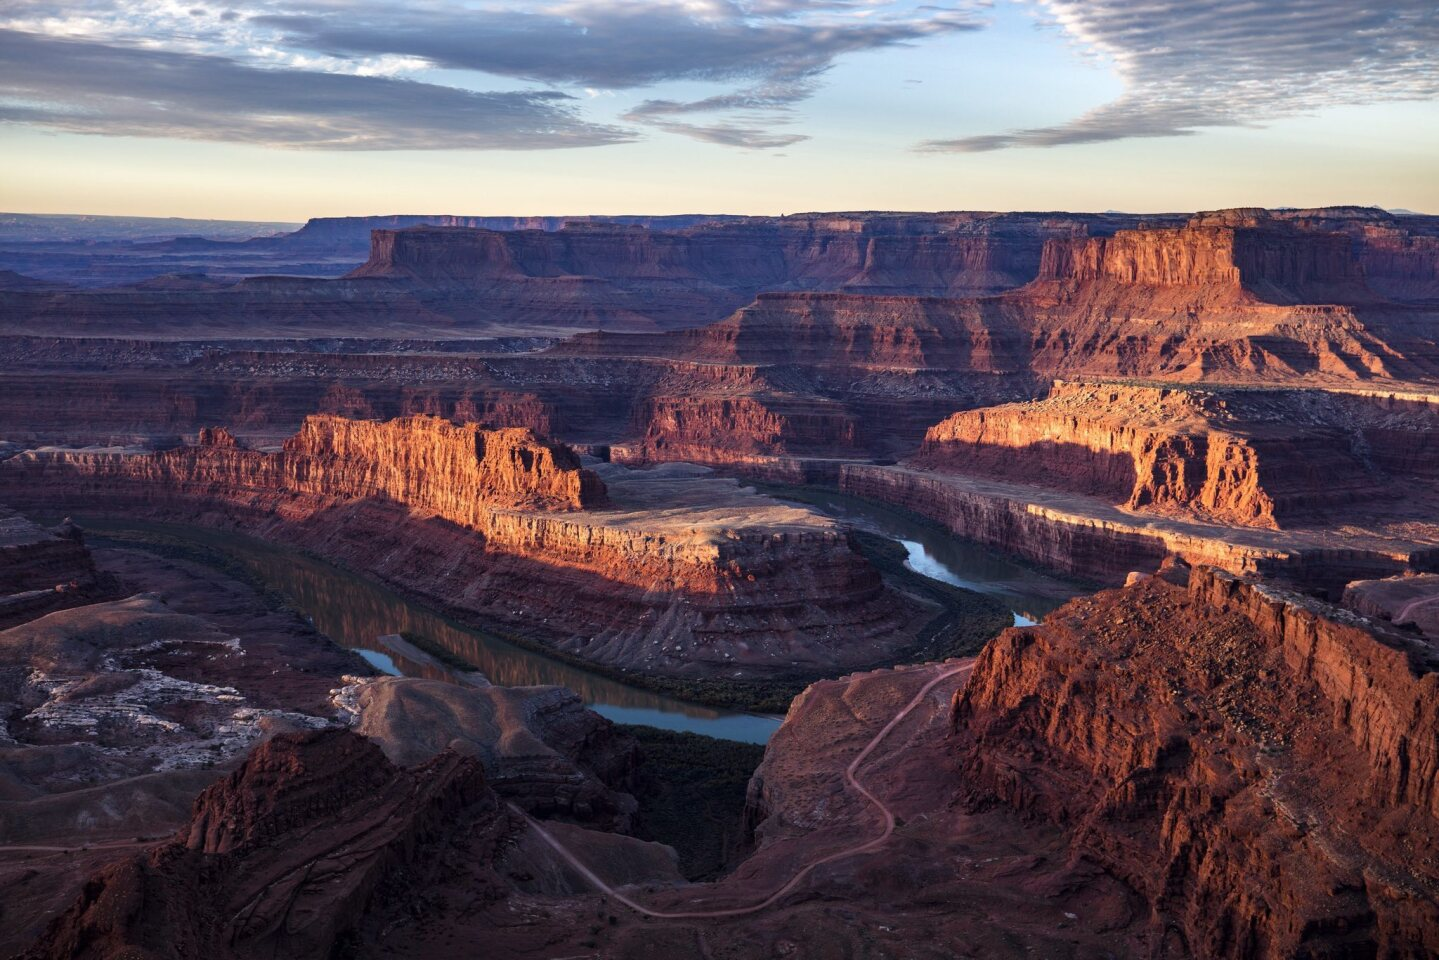 The Colorado River winds around the northern reaches of the Bear Ears National Monument, with Canyonlands National Park in the background, viewed from Dead Horse Point State Park near Moab, Utah.